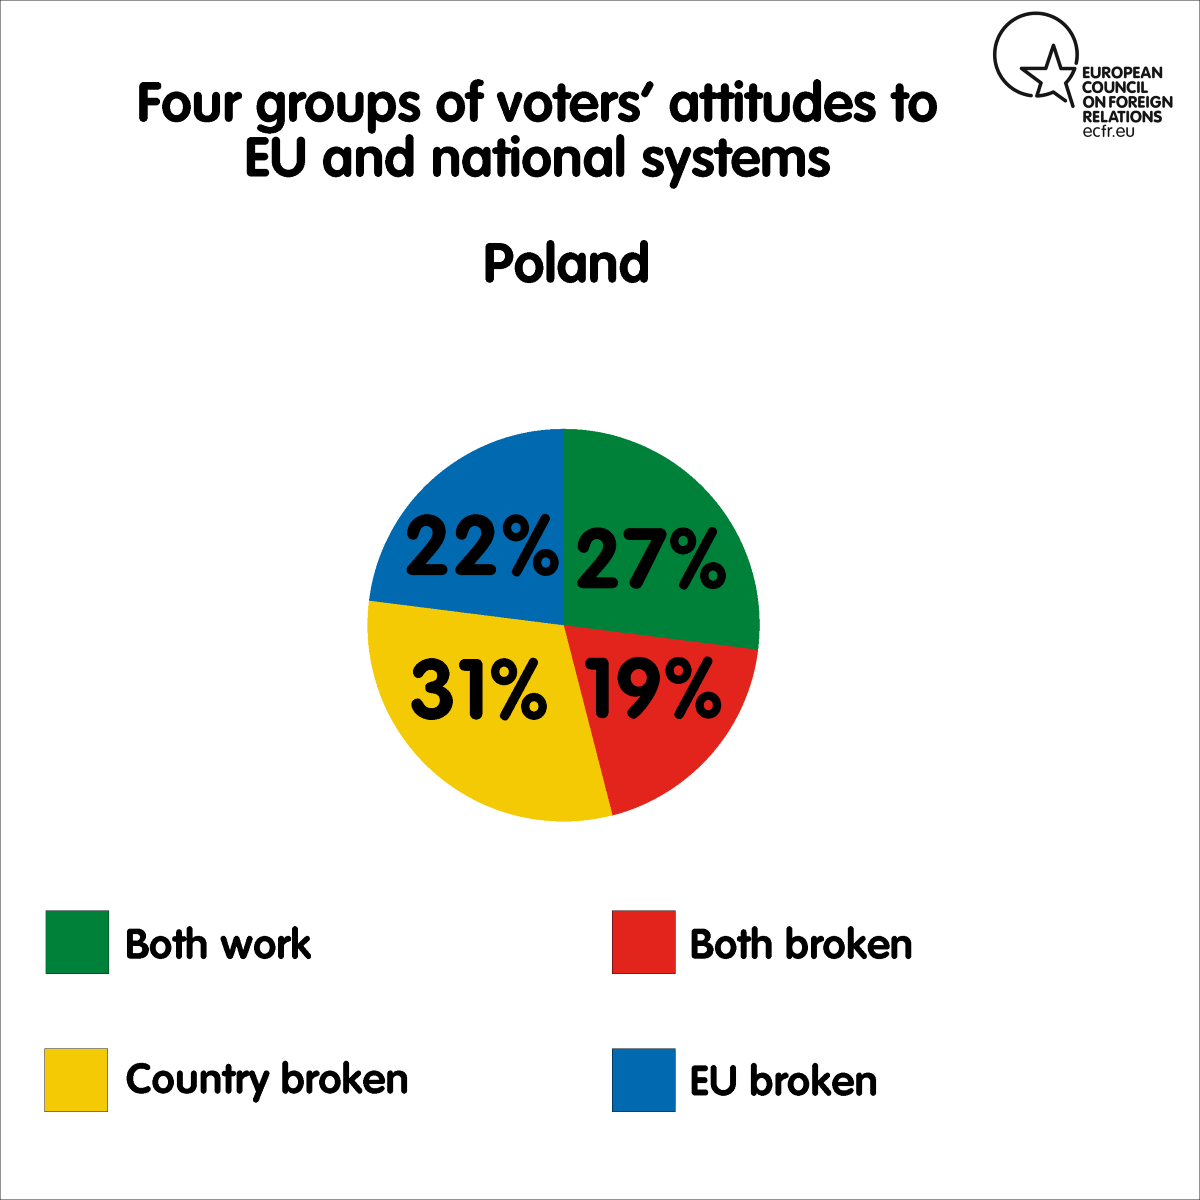 Four groups of voters' attitudes to EU and national systems in Poland